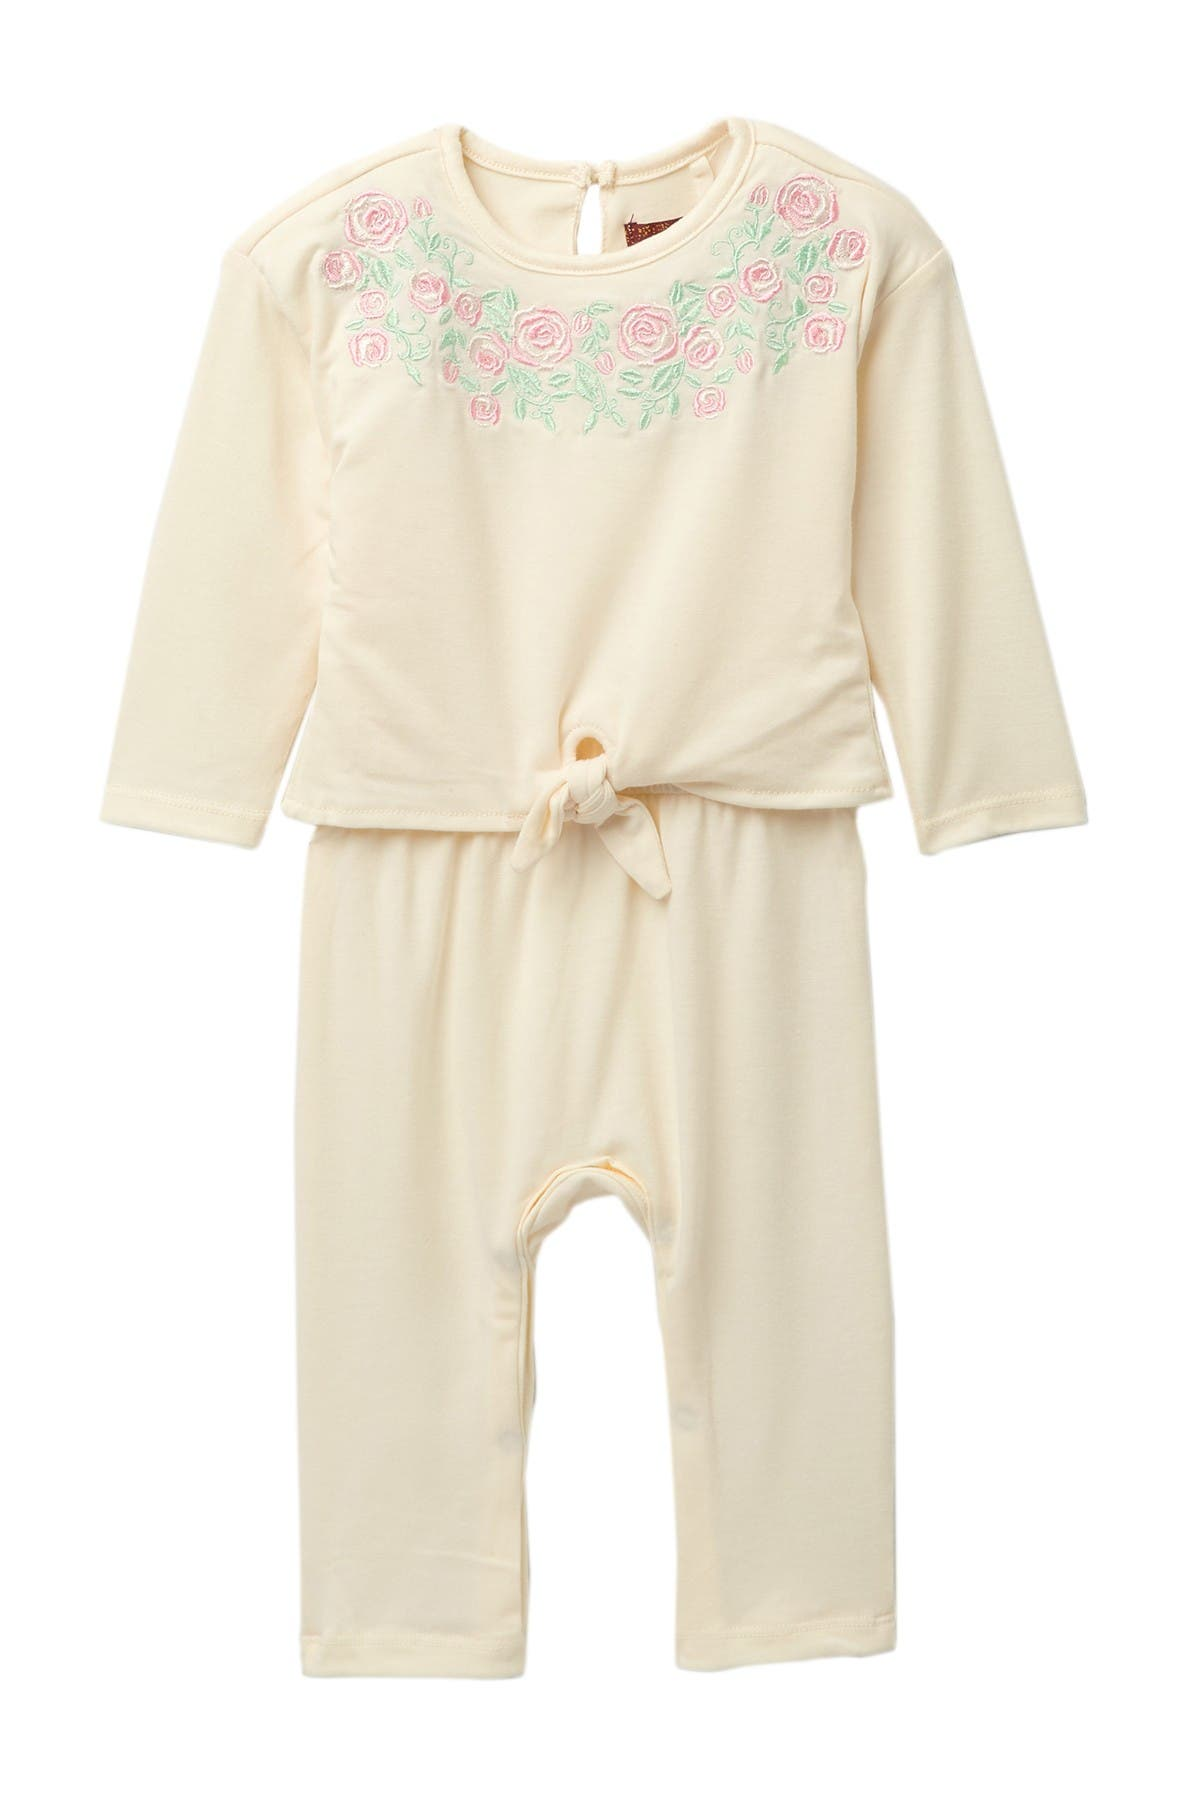 Image of 7 For All Mankind Embroidered Popover Coverall